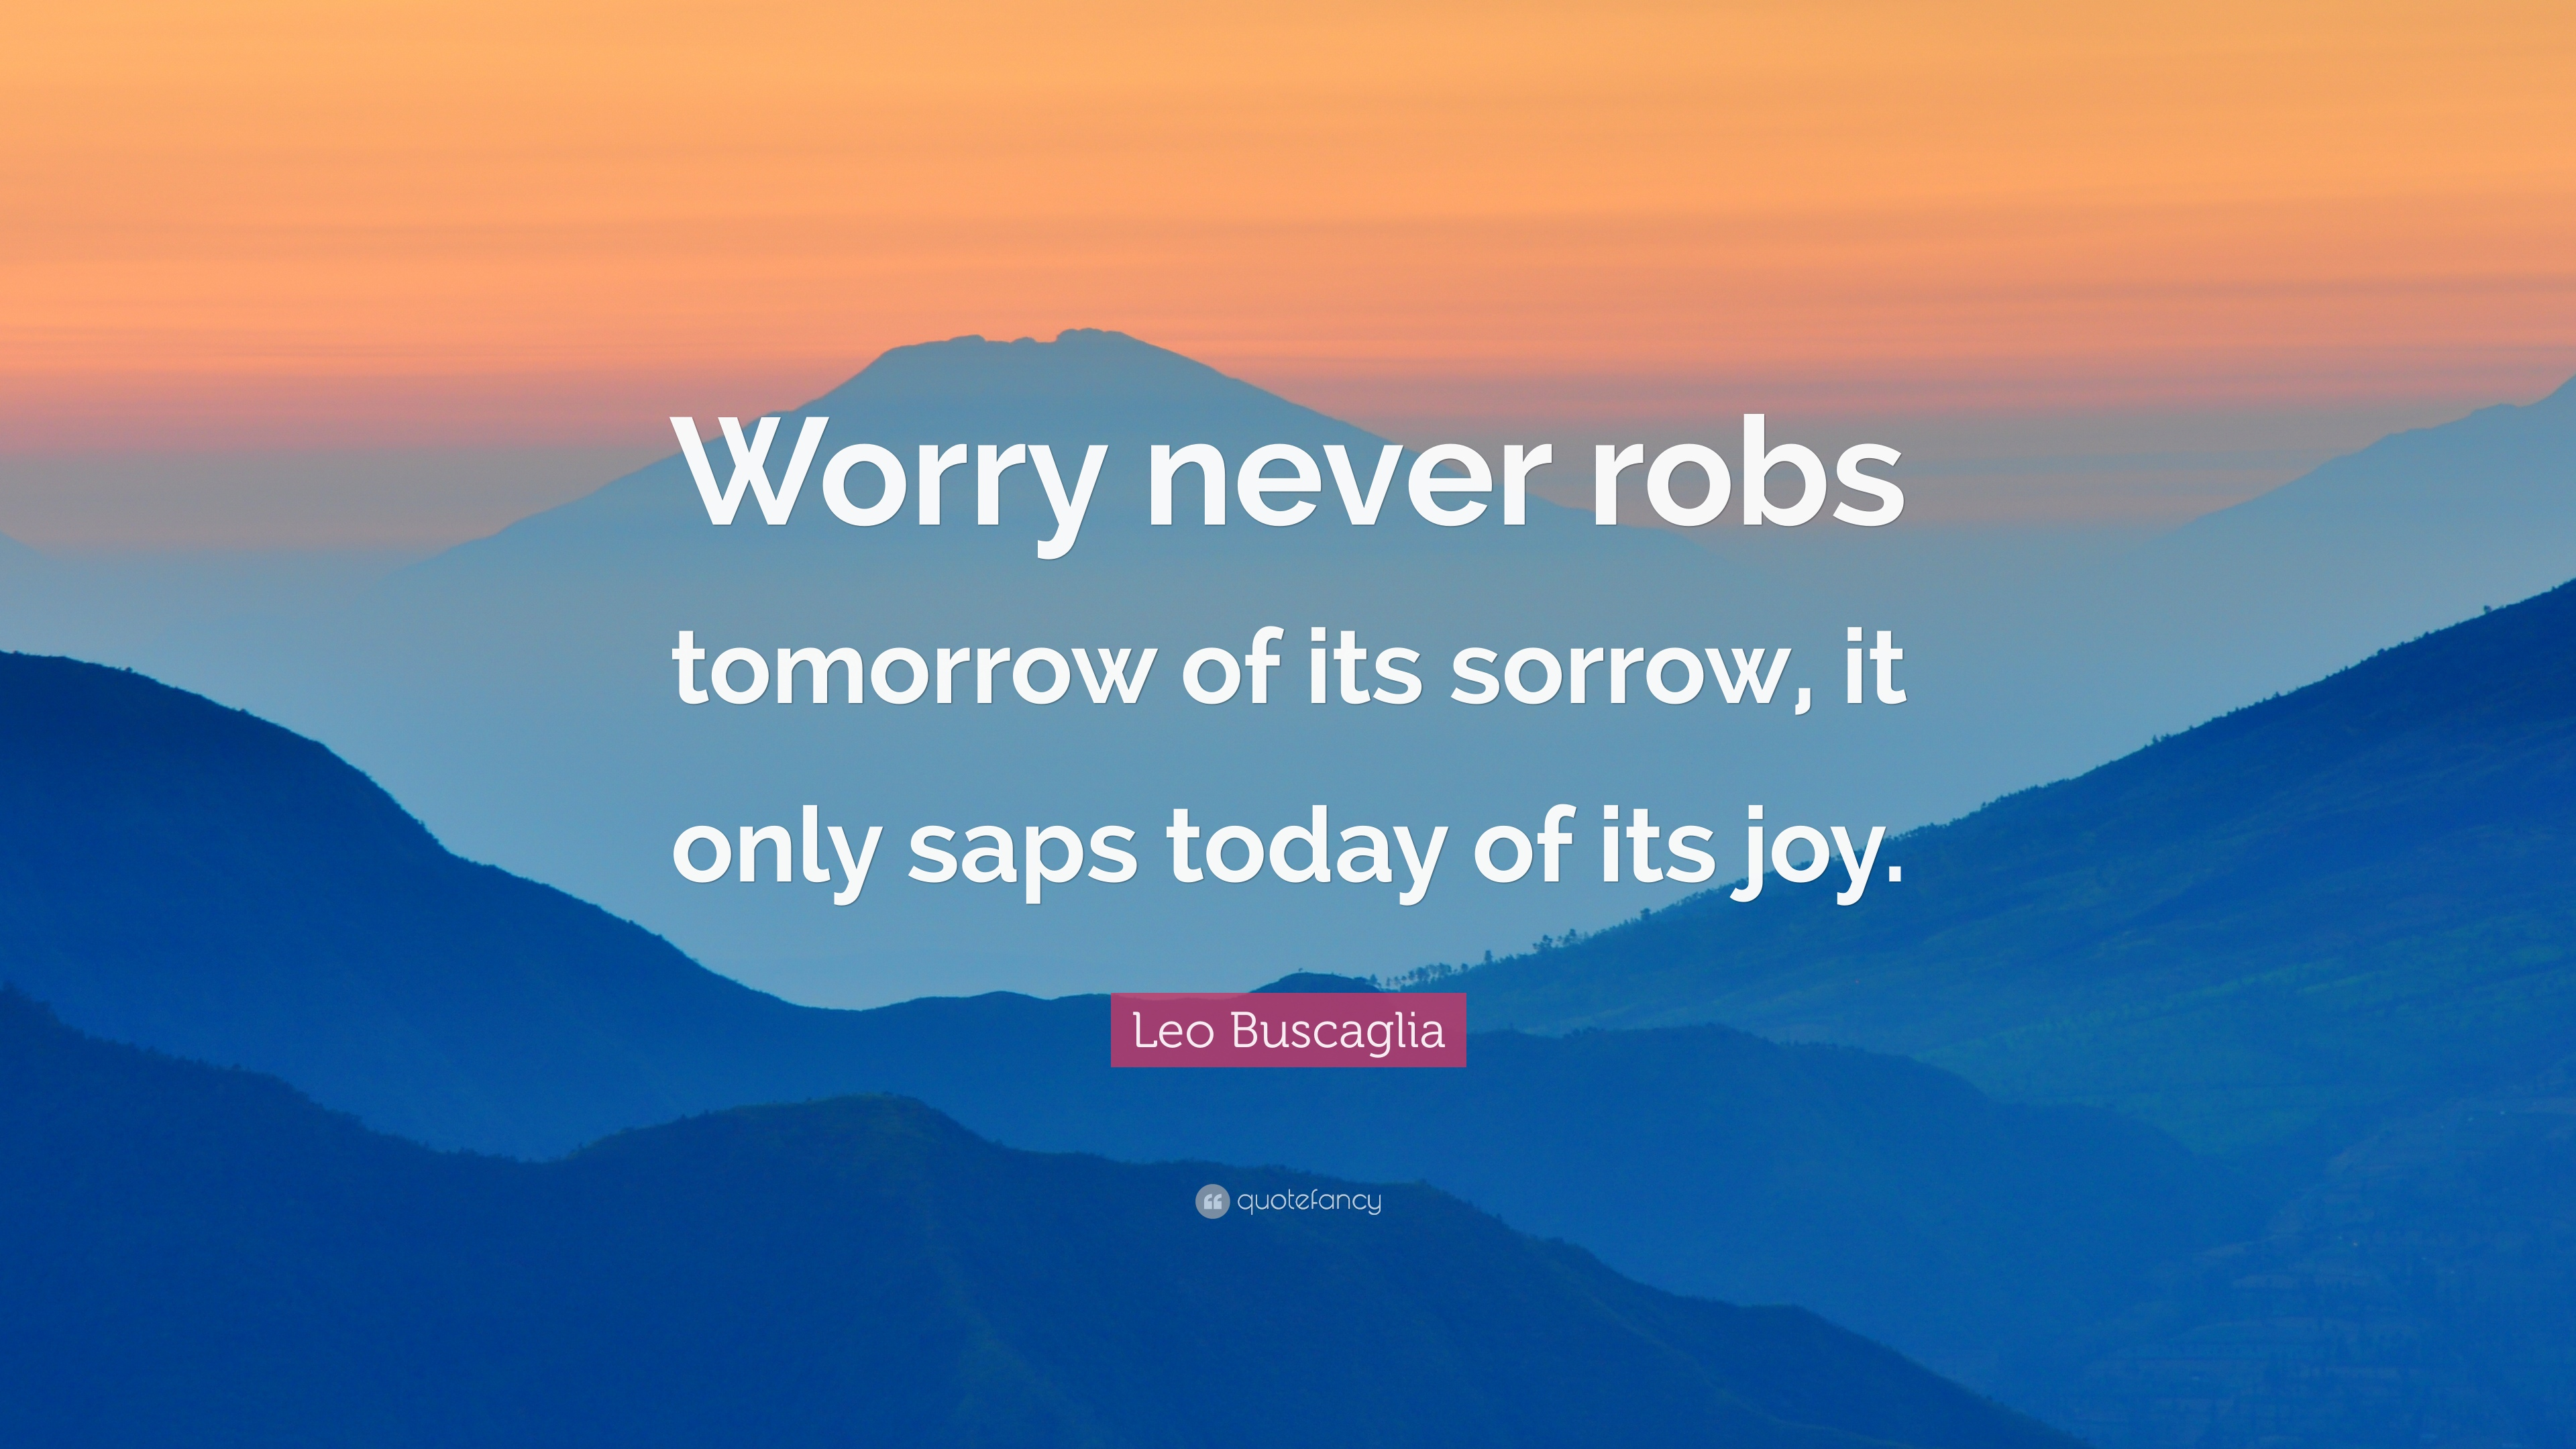 Image result for worrying today robs